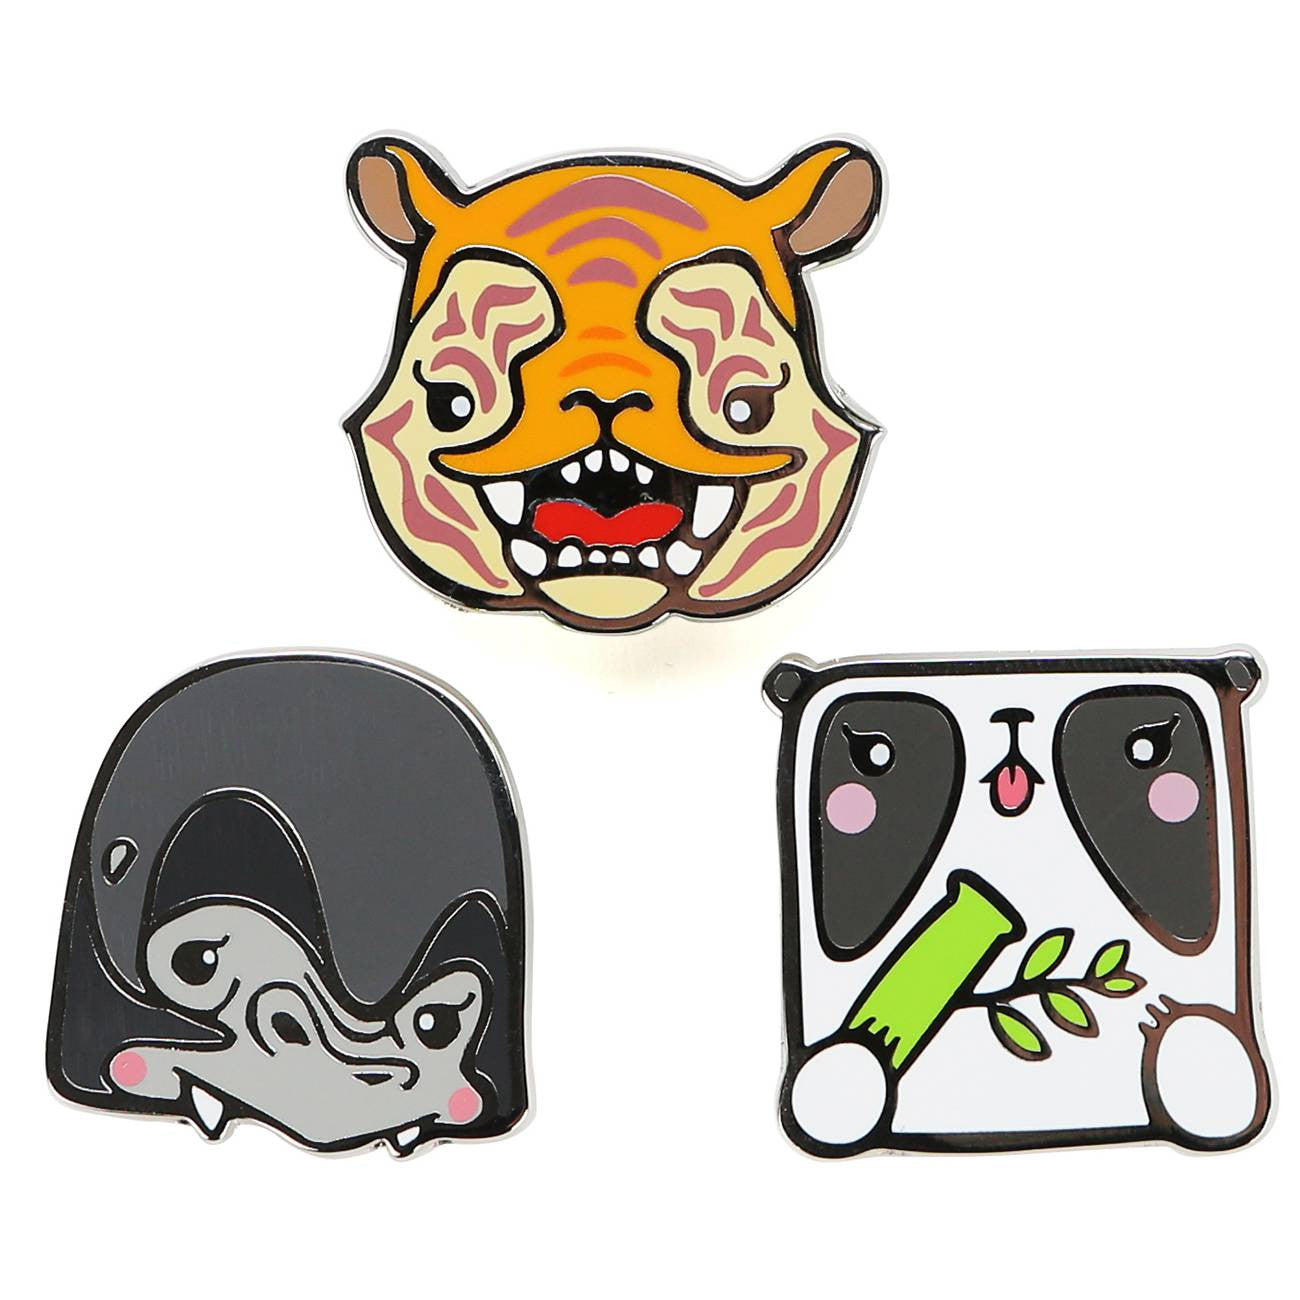 Enfu: Cute and Wild Pin Set